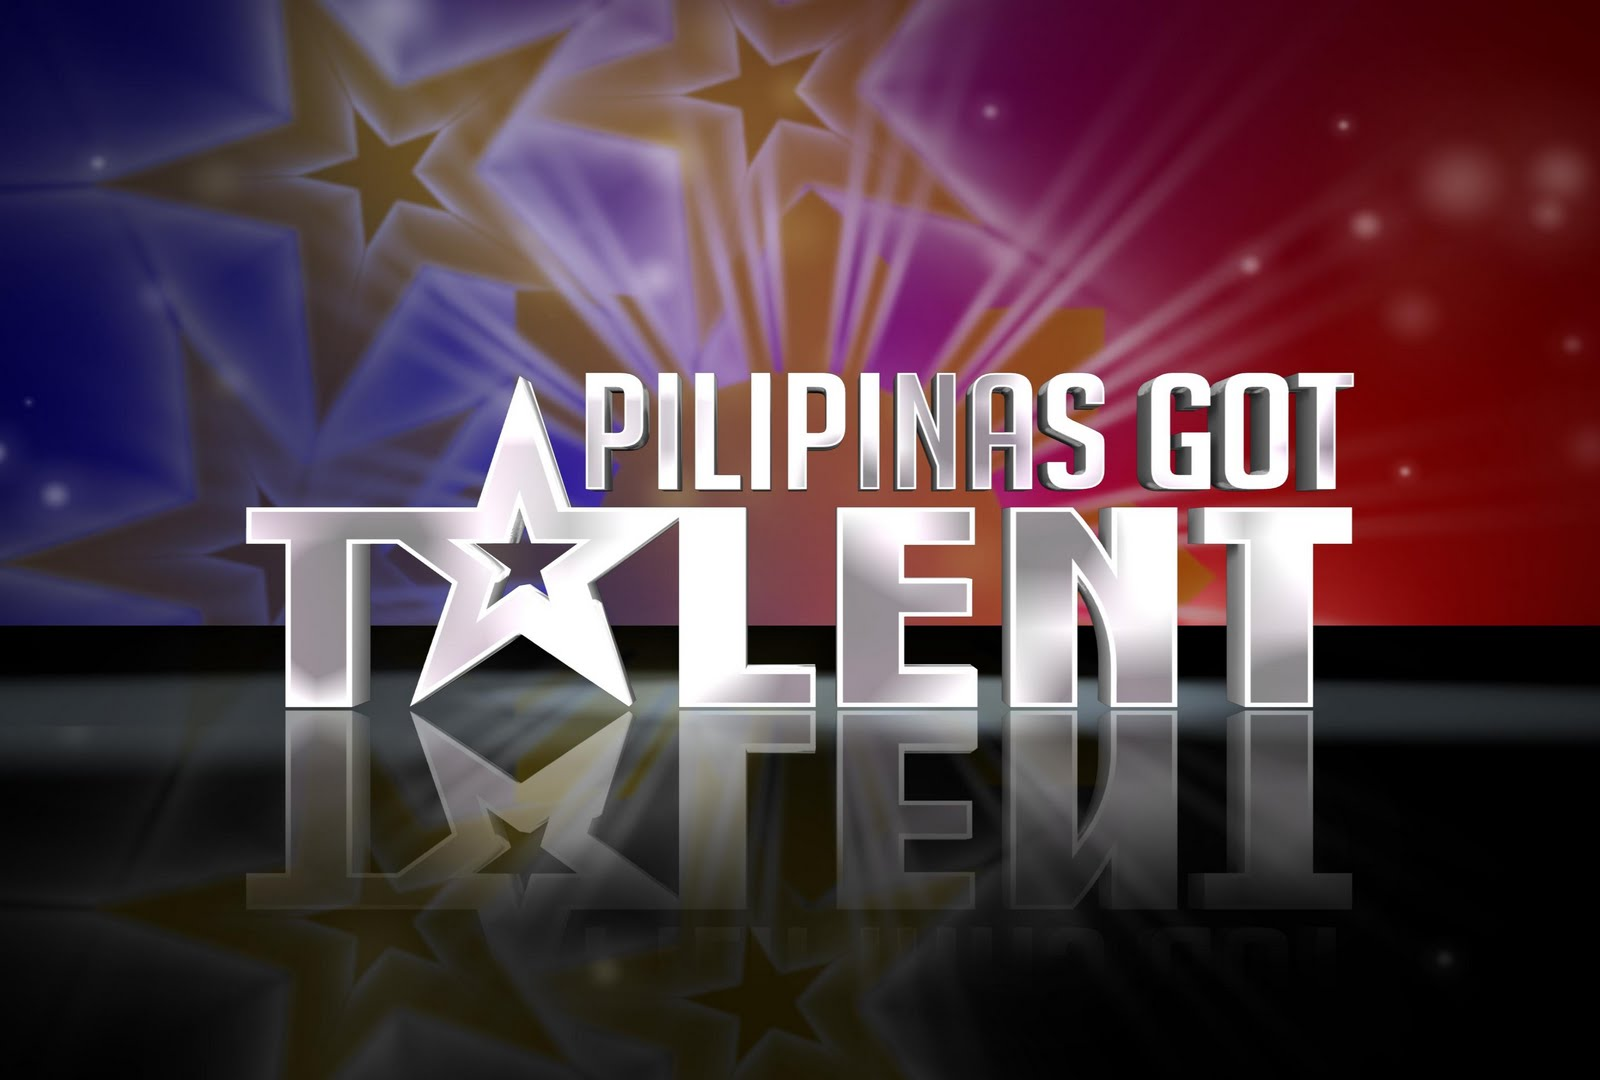 Pilipinas Got Talent March 24, 2013